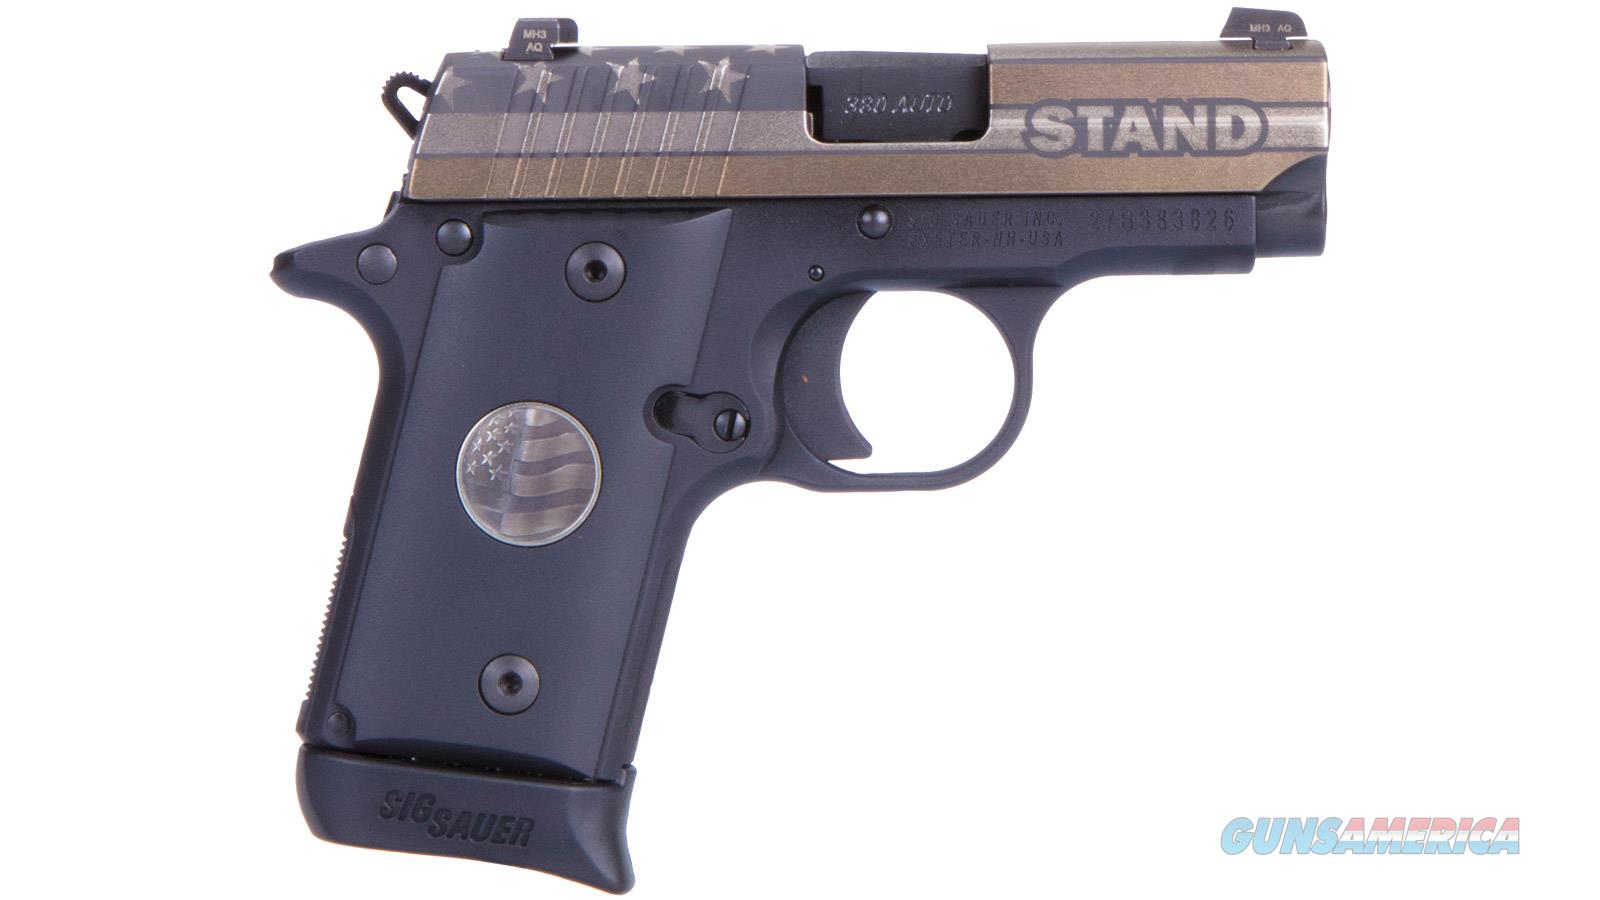 "Sig Sauer 238 Stand 380Acp 2.7"" 7Rd 238-380-STAND  Guns > Pistols > S Misc Pistols"